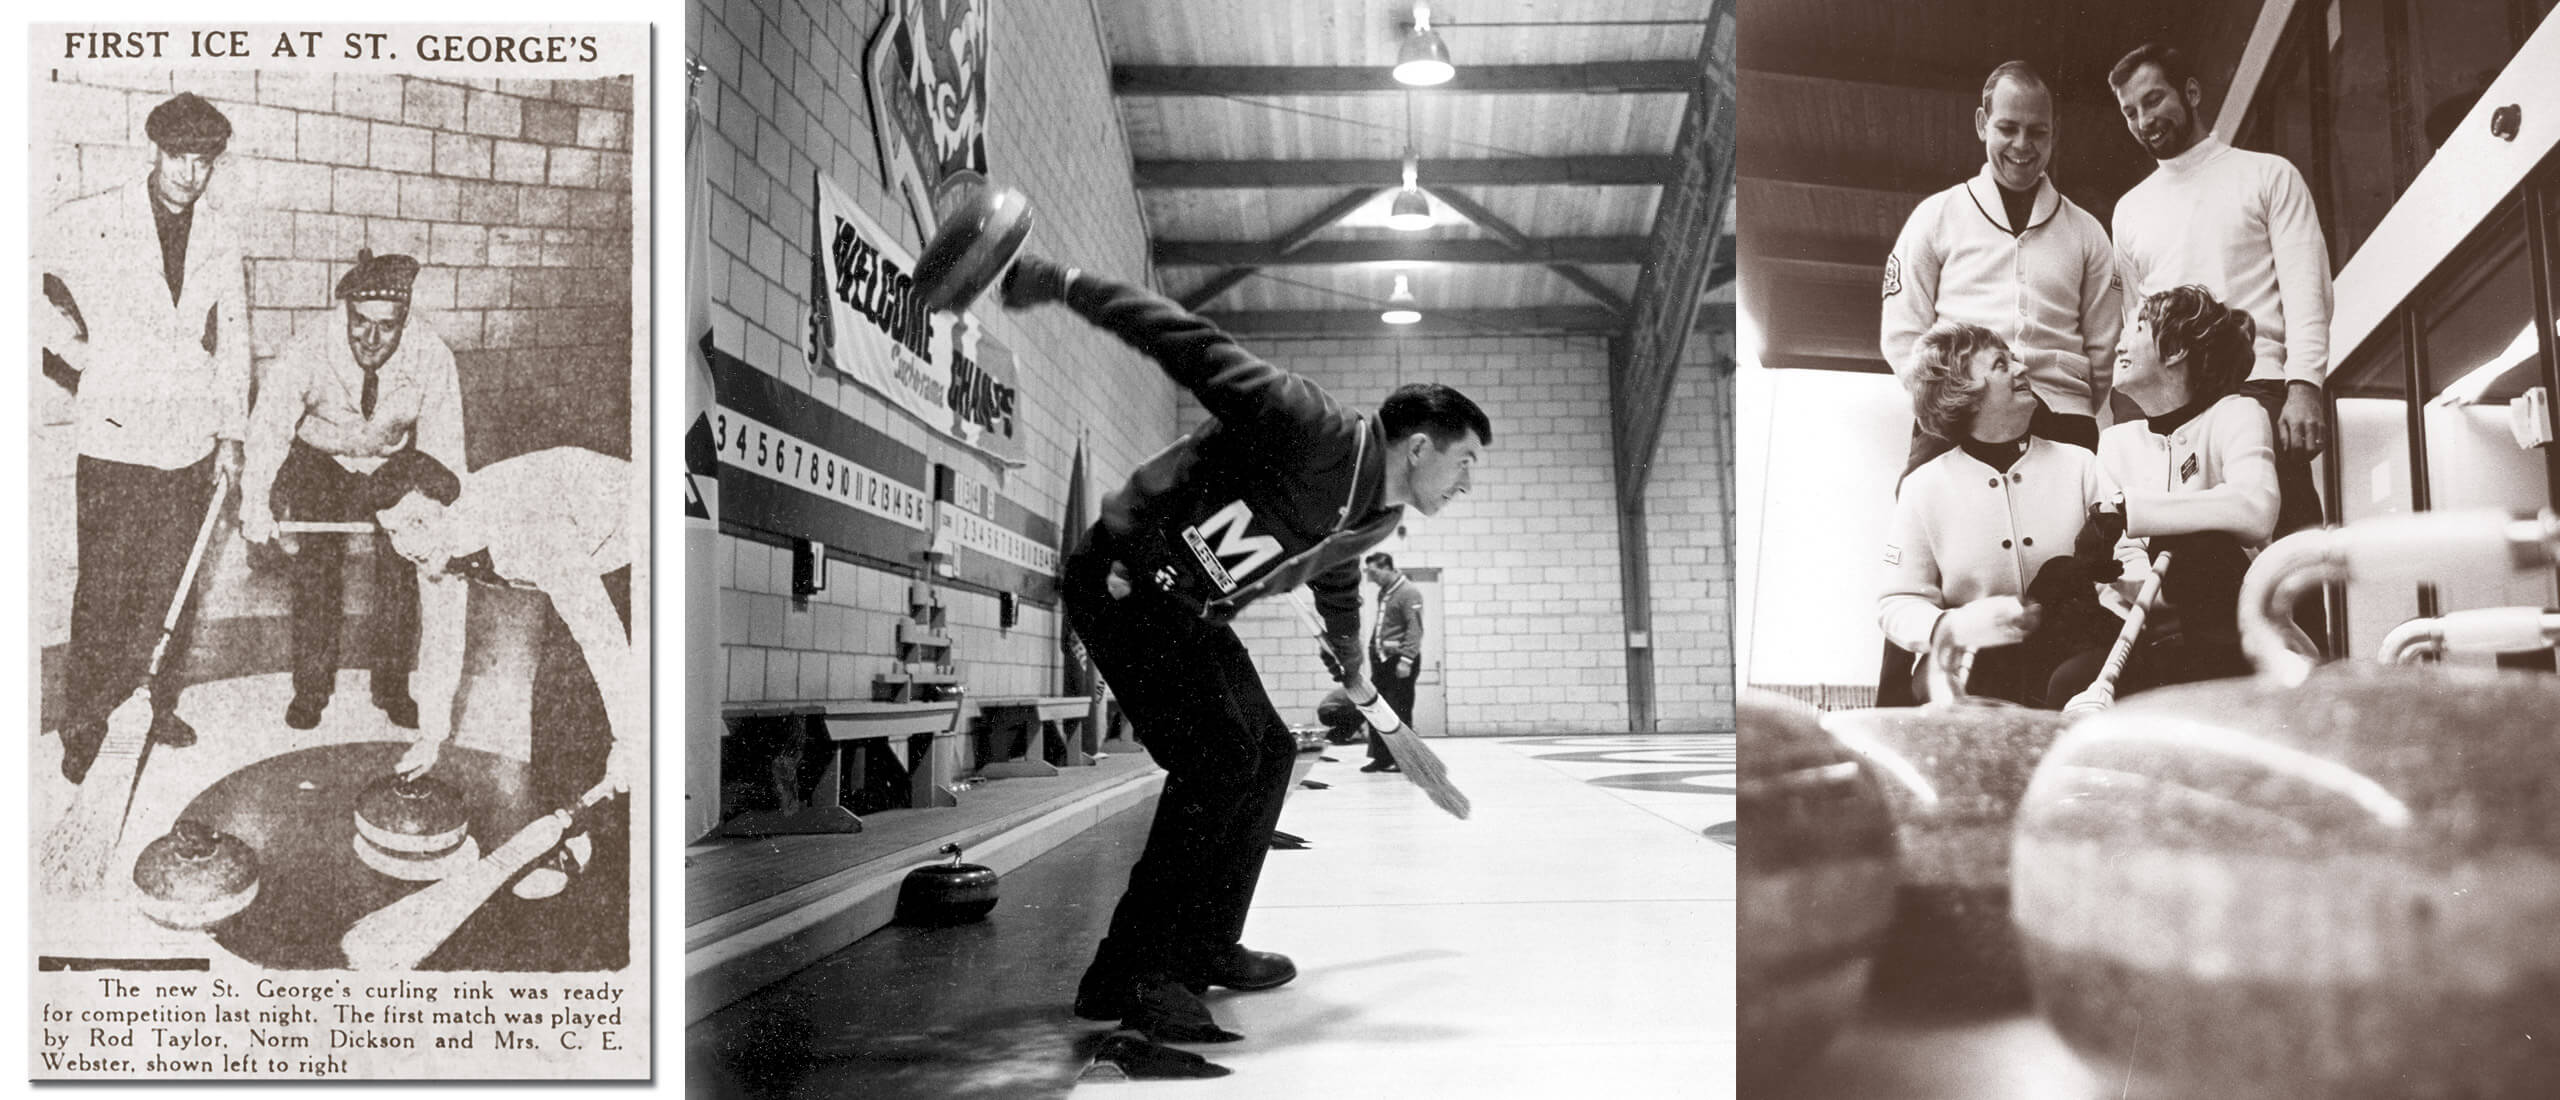 1957 – Curling Debuts at St. George's